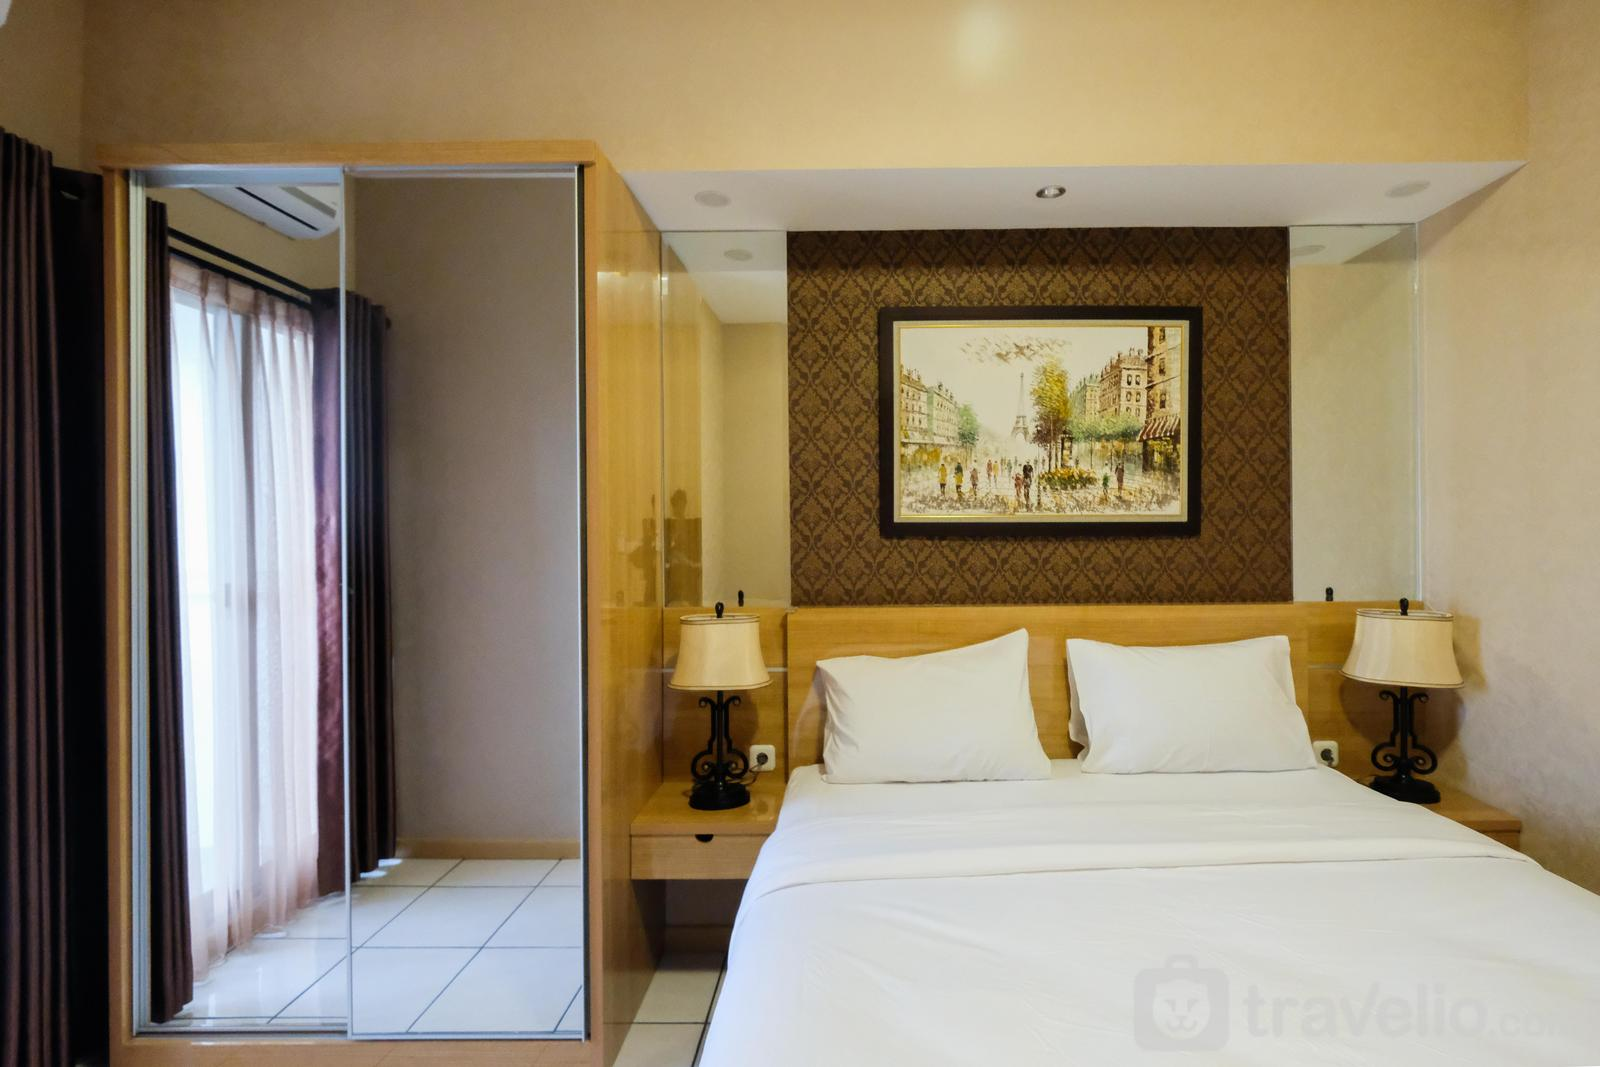 M Town Residence - 2BR Apartment at M-Town Residence near Summarecon Mall Serpong By Travelio